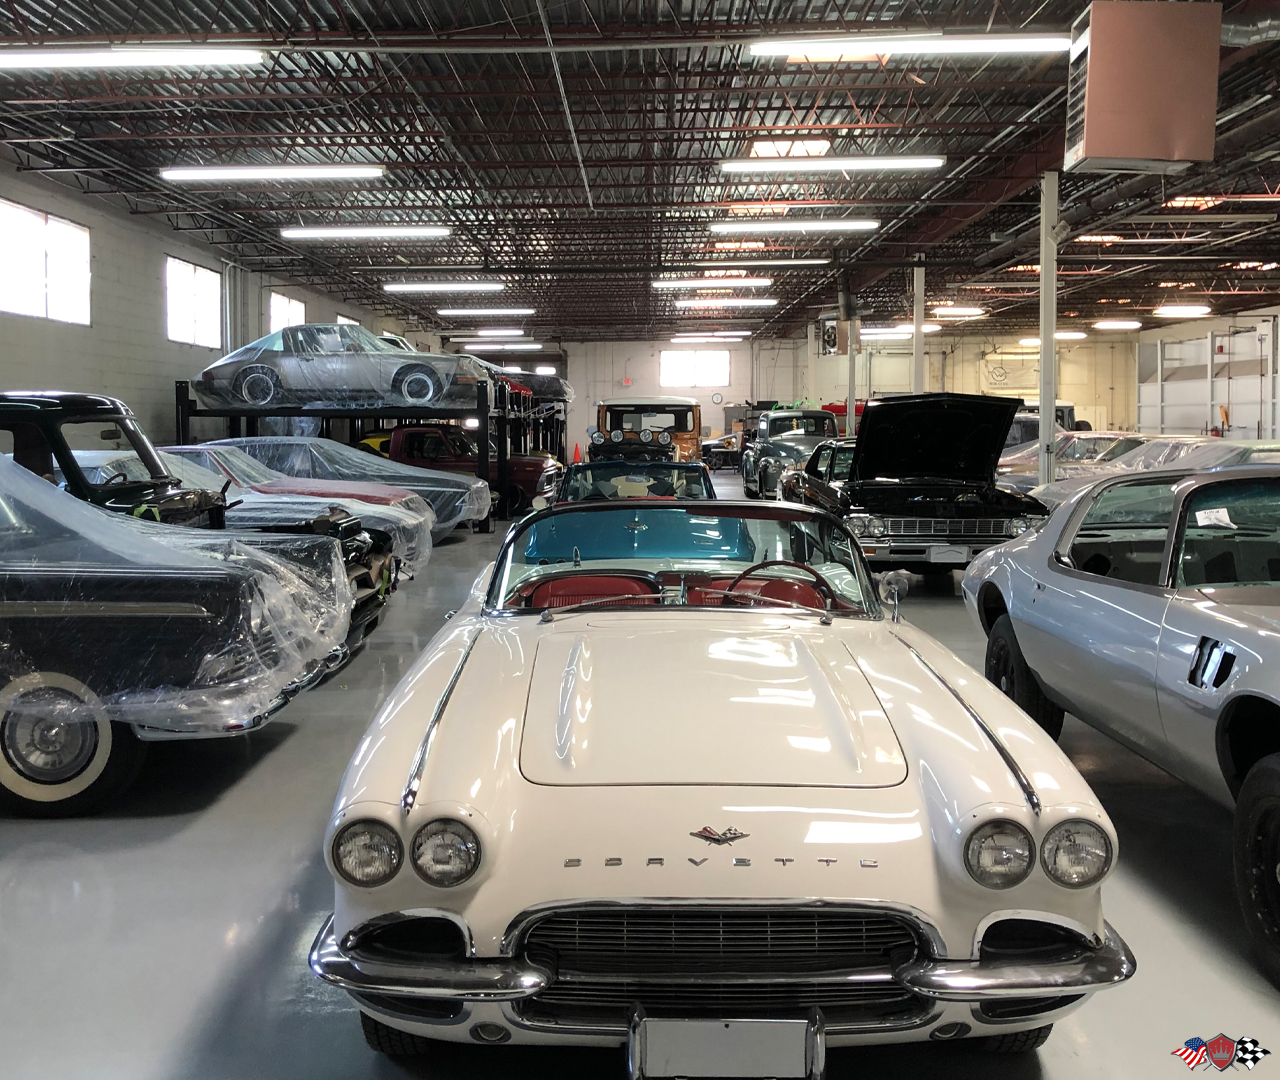 Crown Auto Parts - Classic Car headquarters for parts rebuilding